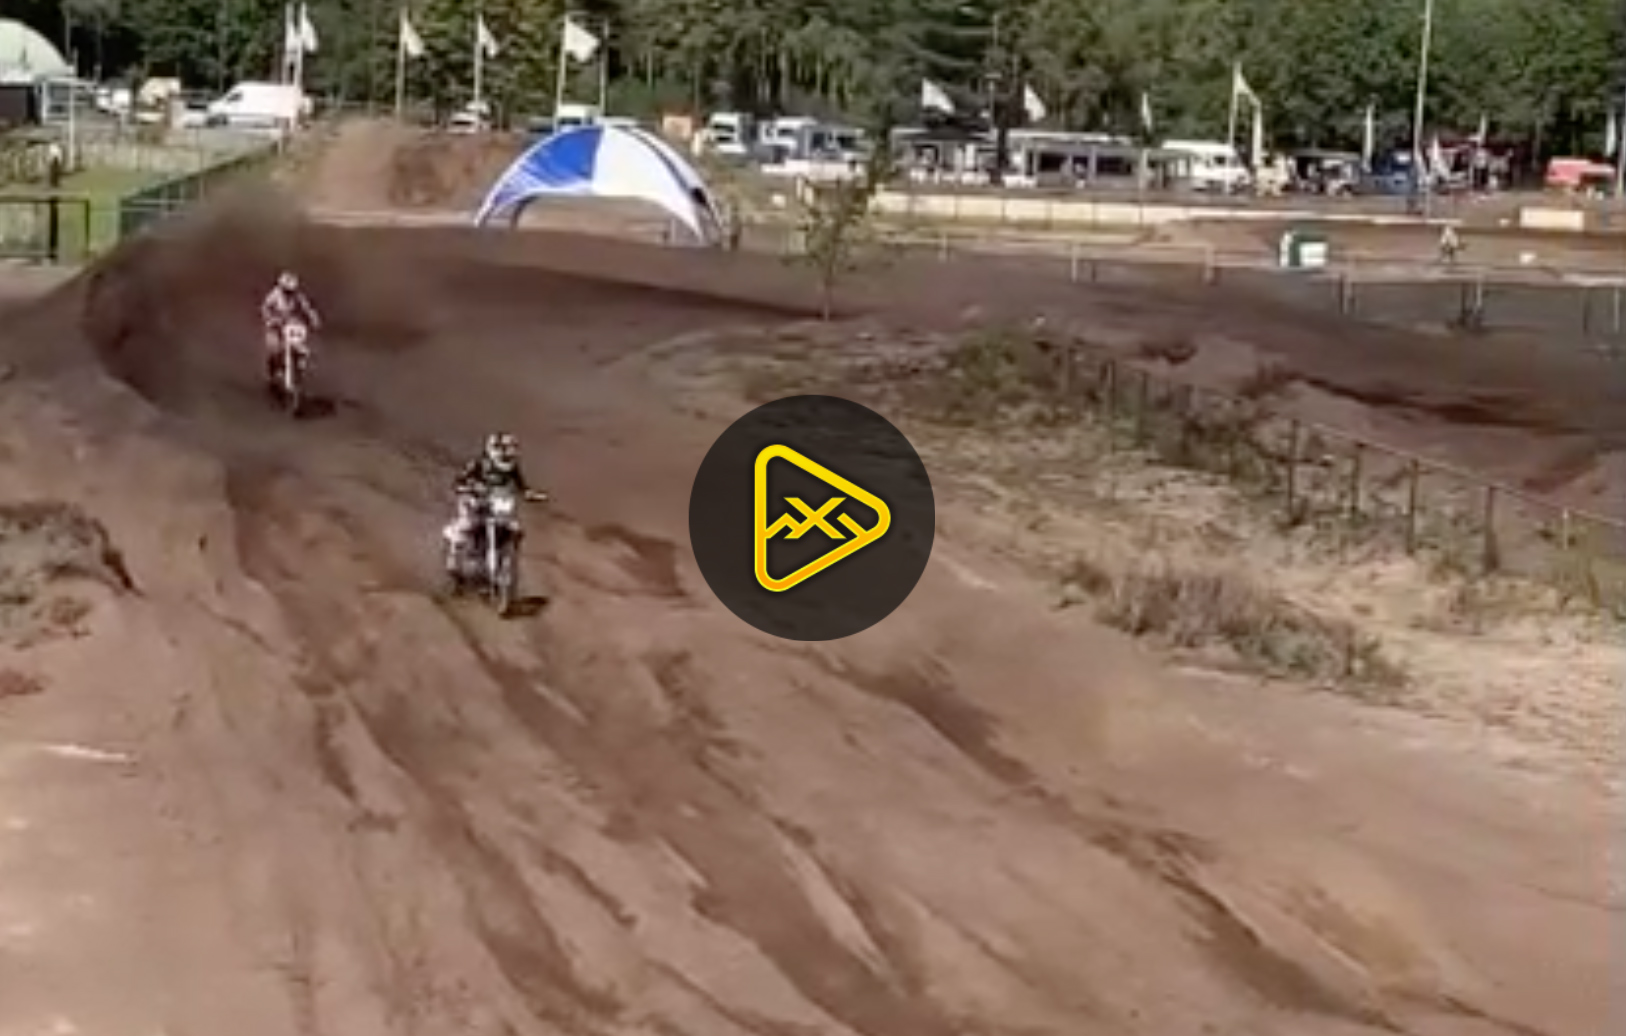 Justin Cooper vs. Jeffrey Herlings in The Sand